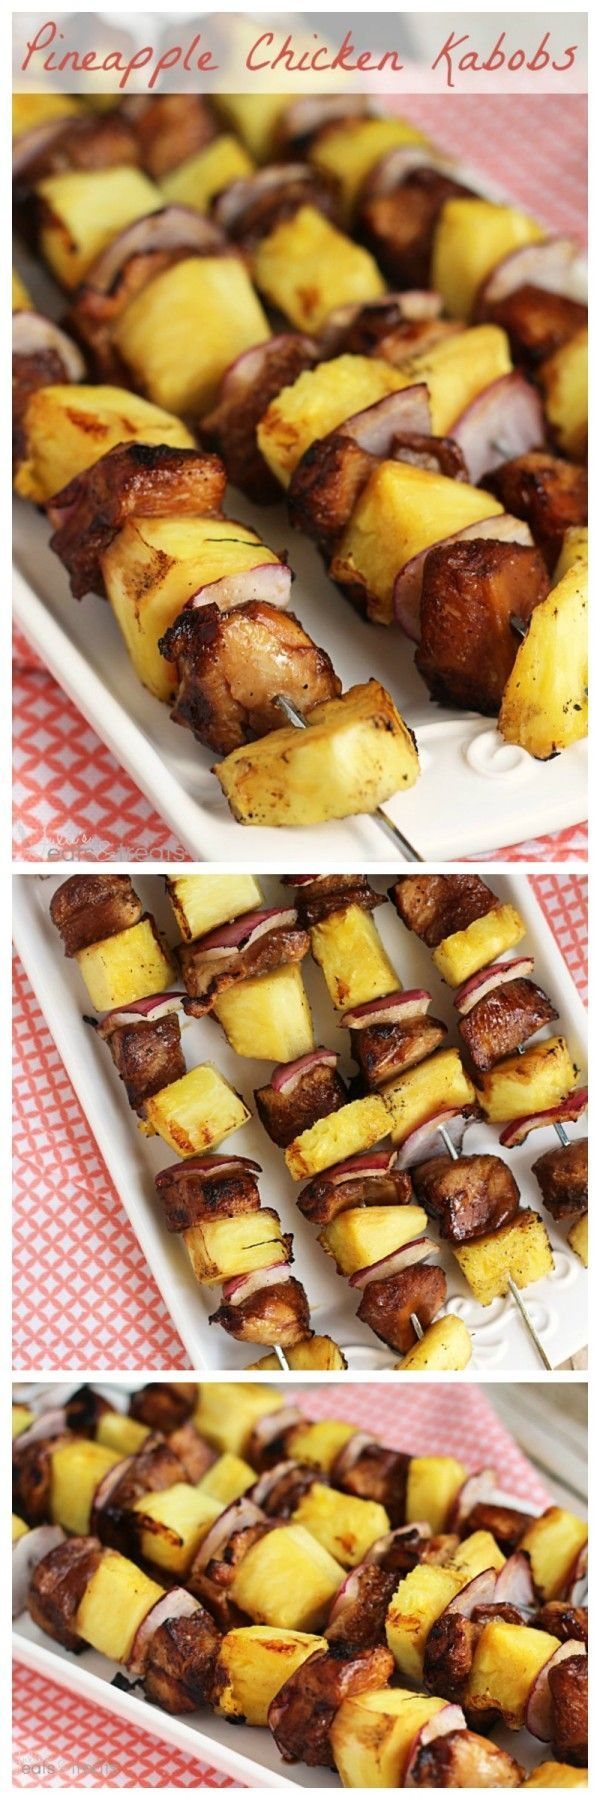 Pineapple Chicken Kabobs ~ Quick and Easy Marinated Kabobs that are the Perfect Combination of Sweet and Tangy!